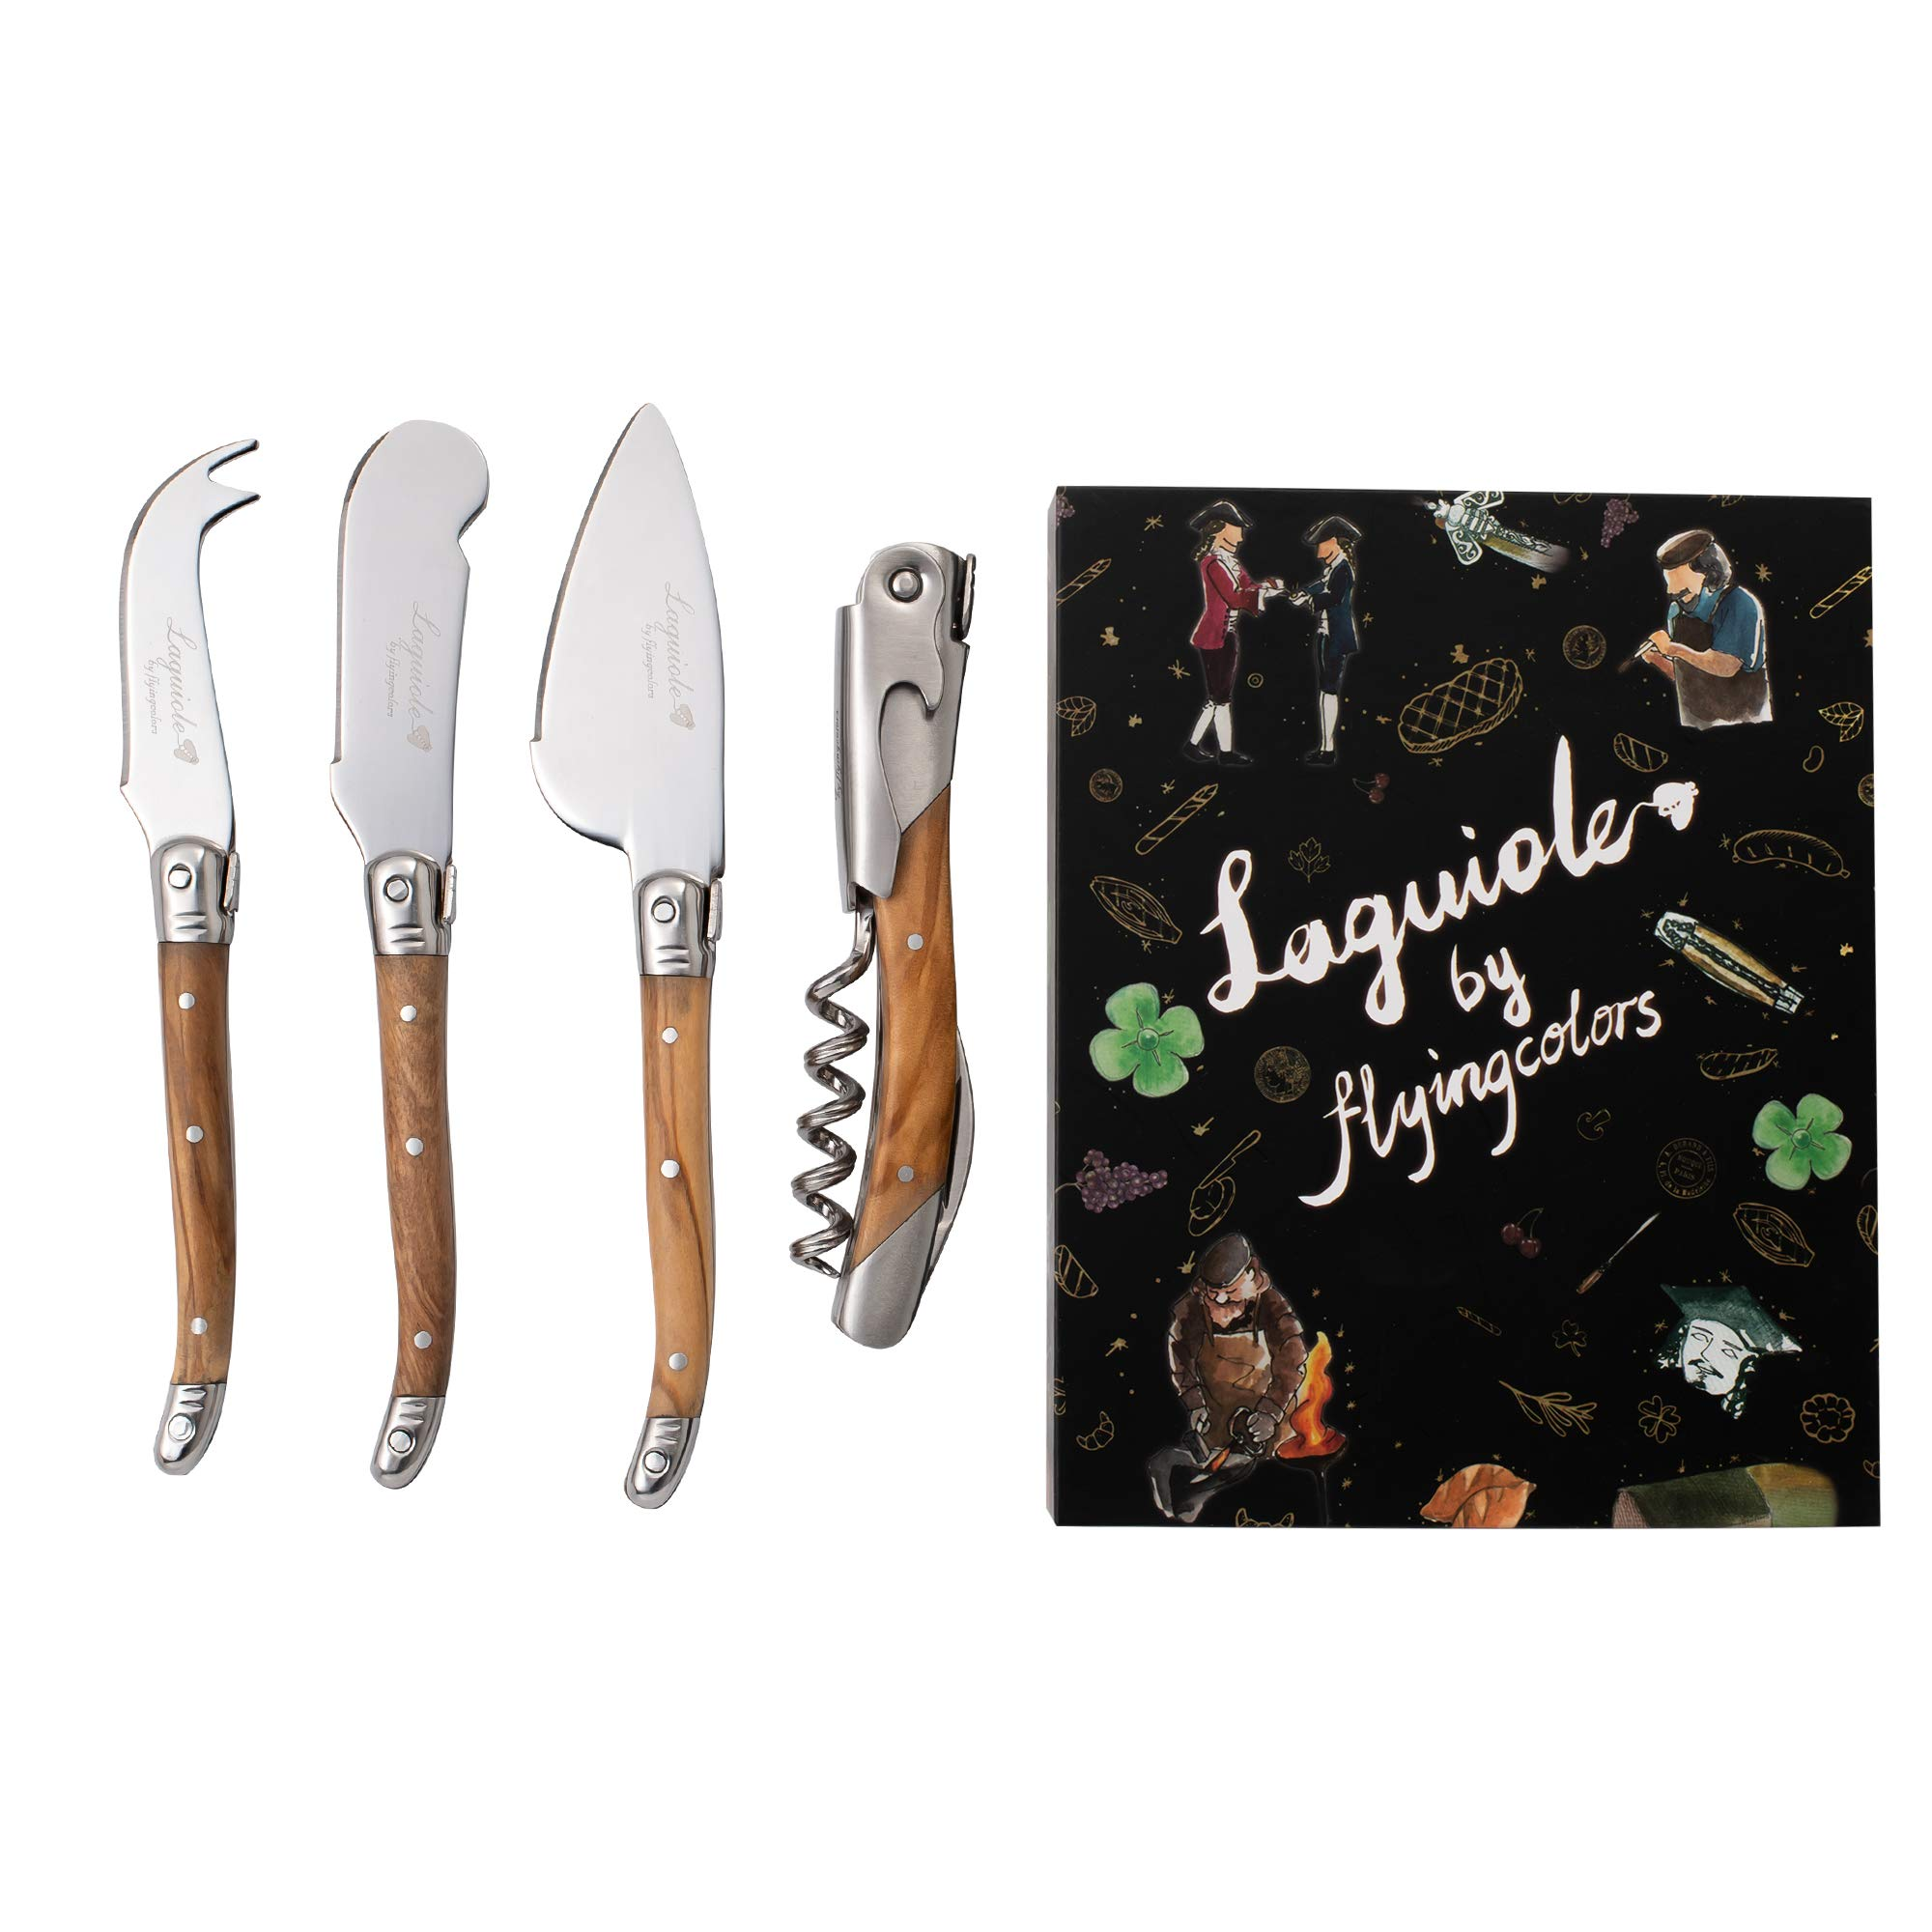 Laguiole By FlyingColors Cheese Knife Set with Corkscrew, Butter Spreader Knives Set with Bottle Opener, with Gift Box by LAGUIOLE BY FLYINGCOLORS